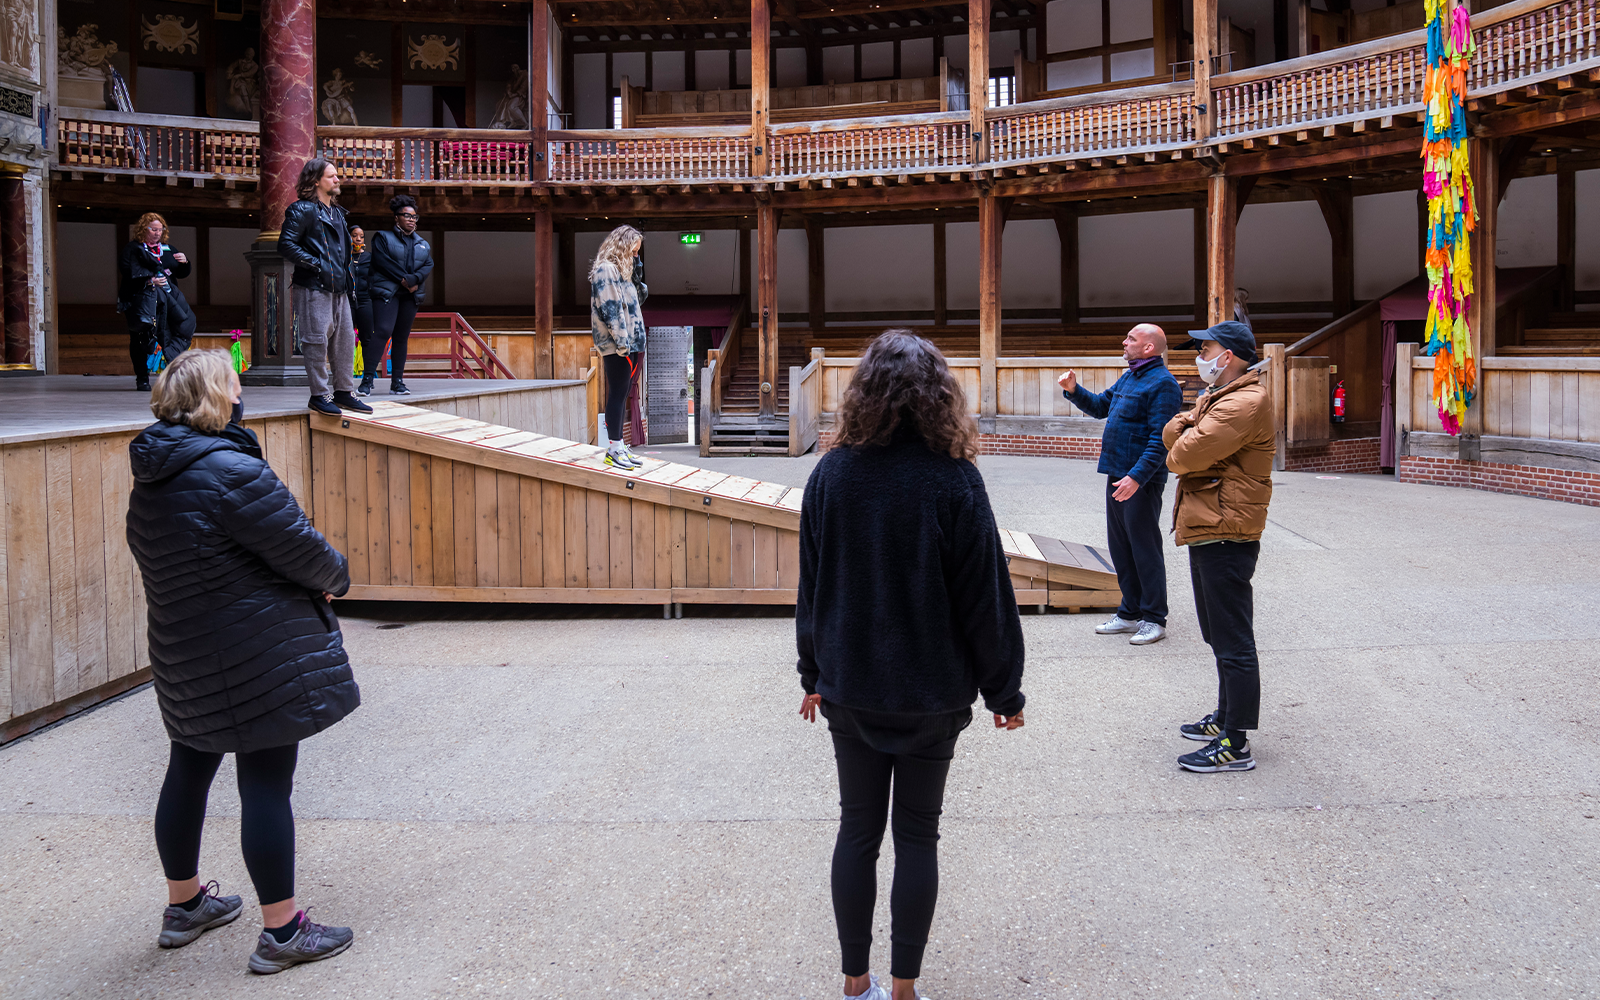 A group of actors stand on the edge of a wooden stage as members of the creative team, including the director, talk to them from the yard below